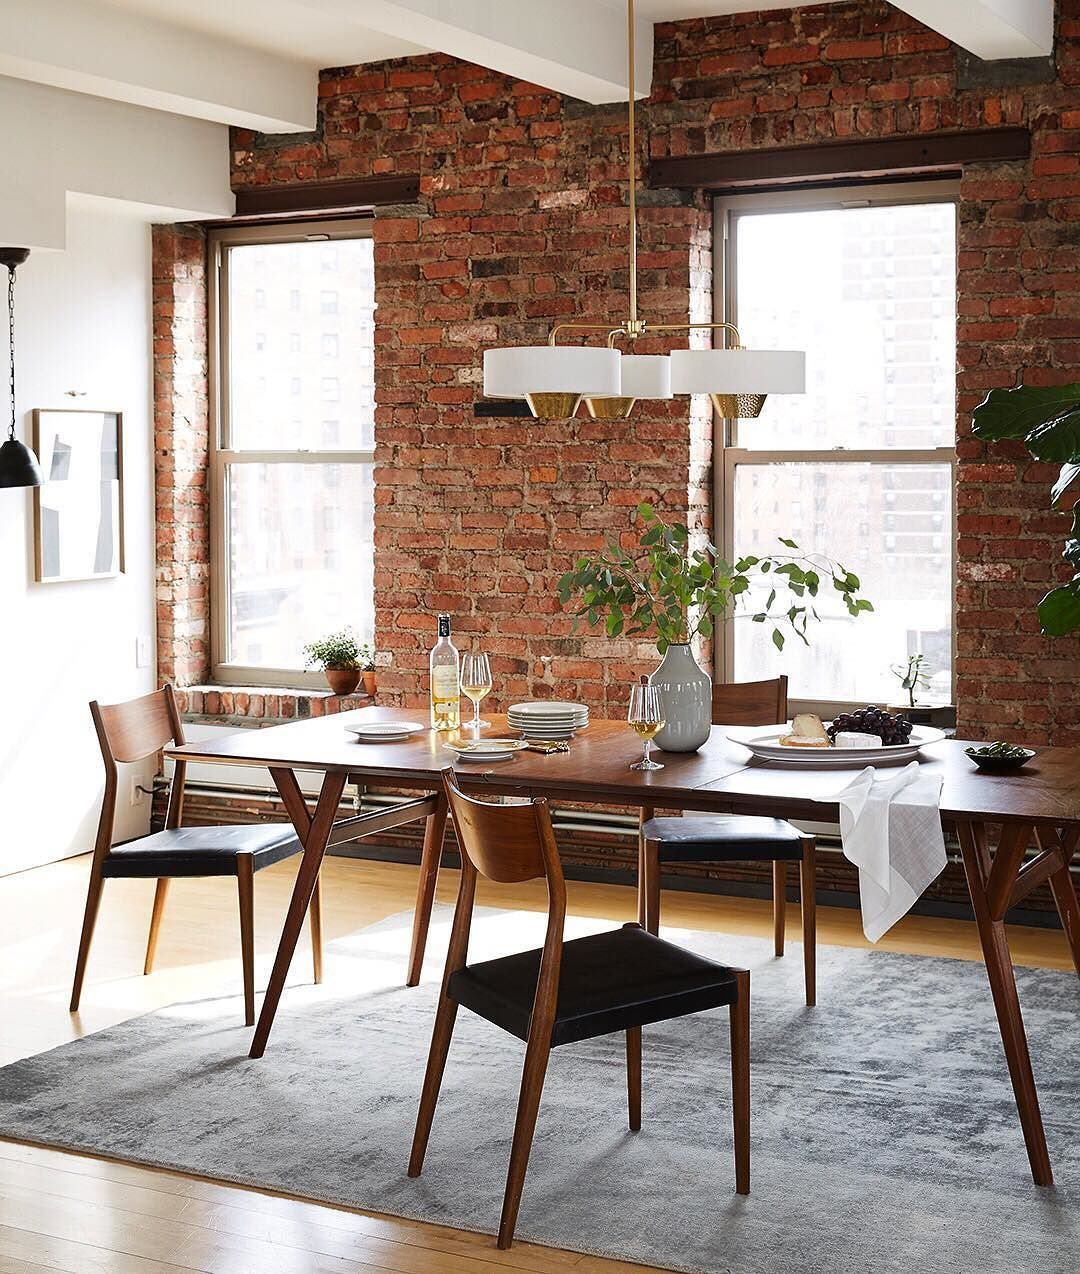 19 Urban Dining Room Designs Decorating Ideas: Pop Some Bottles: It's FRIDAY. / Shop This Whole Dining